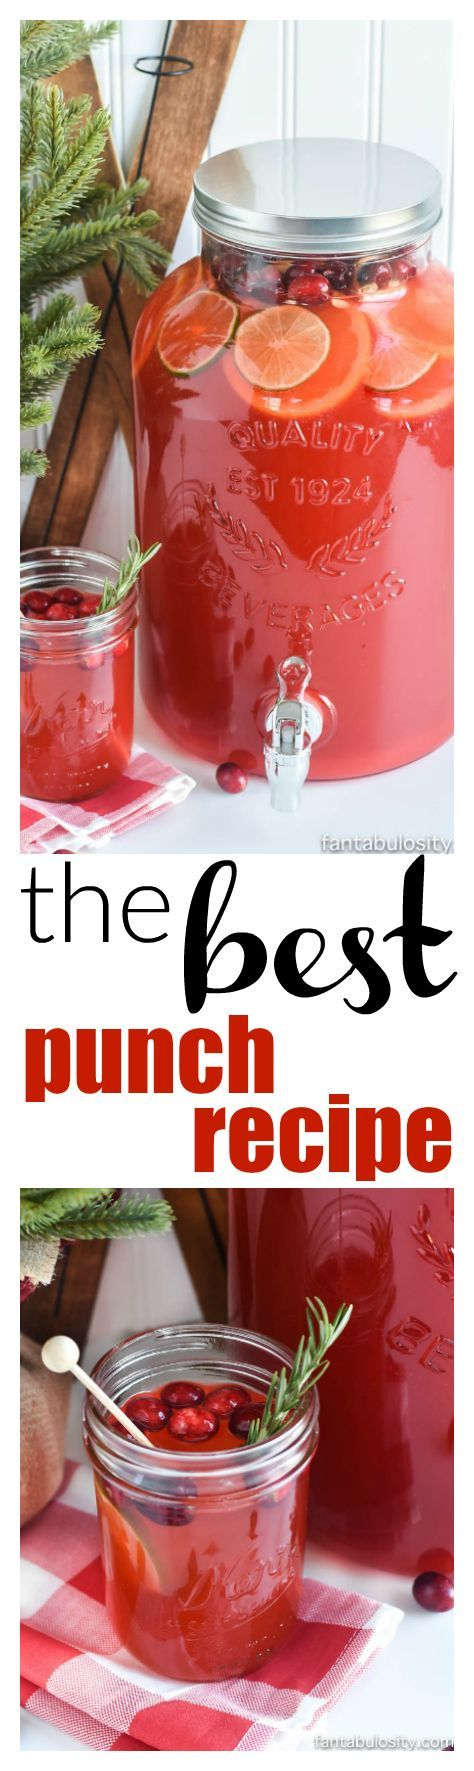 The BEST Punch Recipe for Any Party: made with Sprite (or lemon-lime soda), pineapple juice, kool-aid, sugar, and water! So easy, and the best ever! You have to click through to get the FULL recipe.